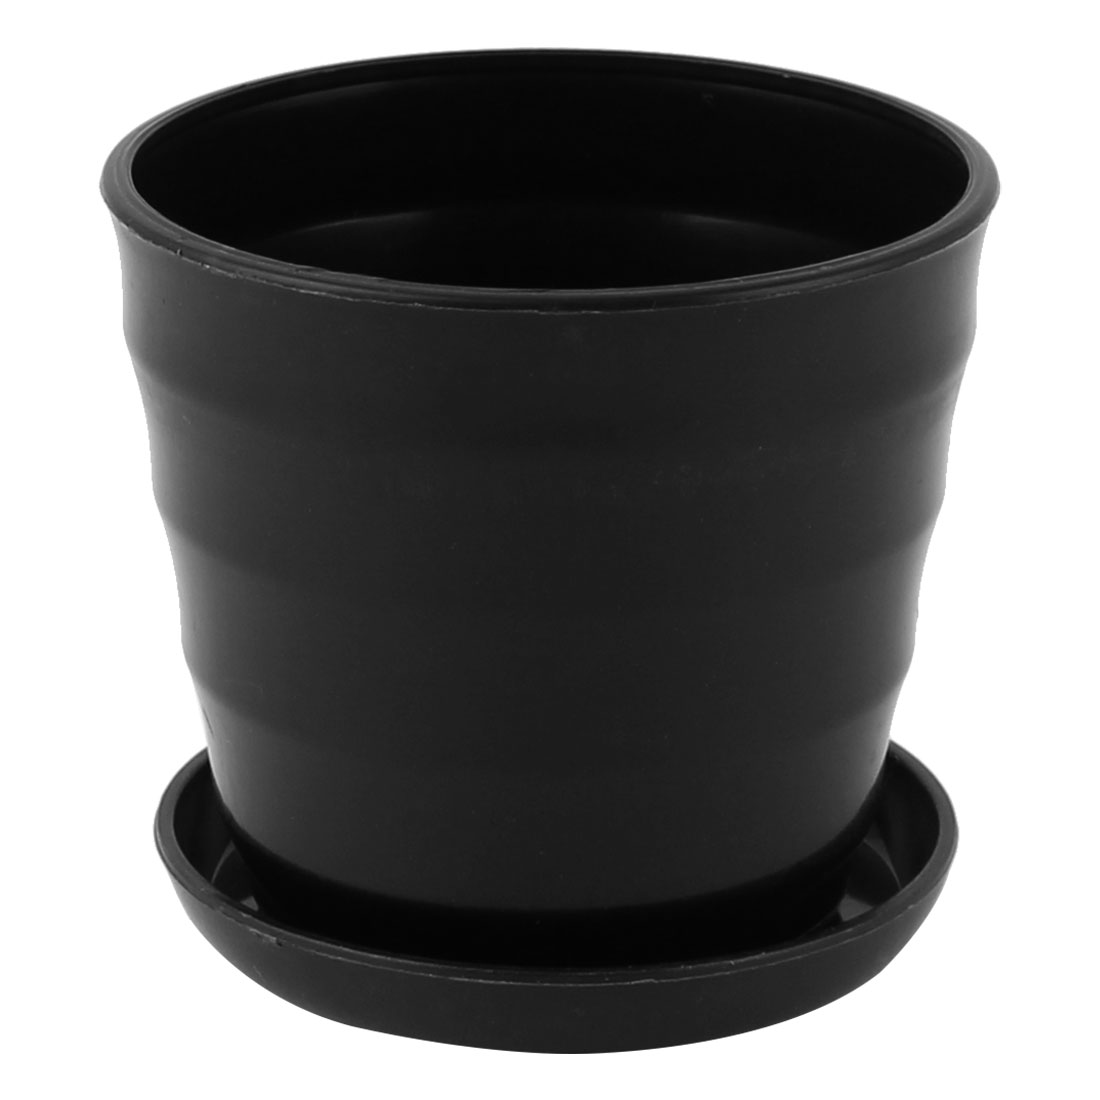 Home Garden Office Plastic Stripe Pattern Mini Plant Planter Flower Pot Black